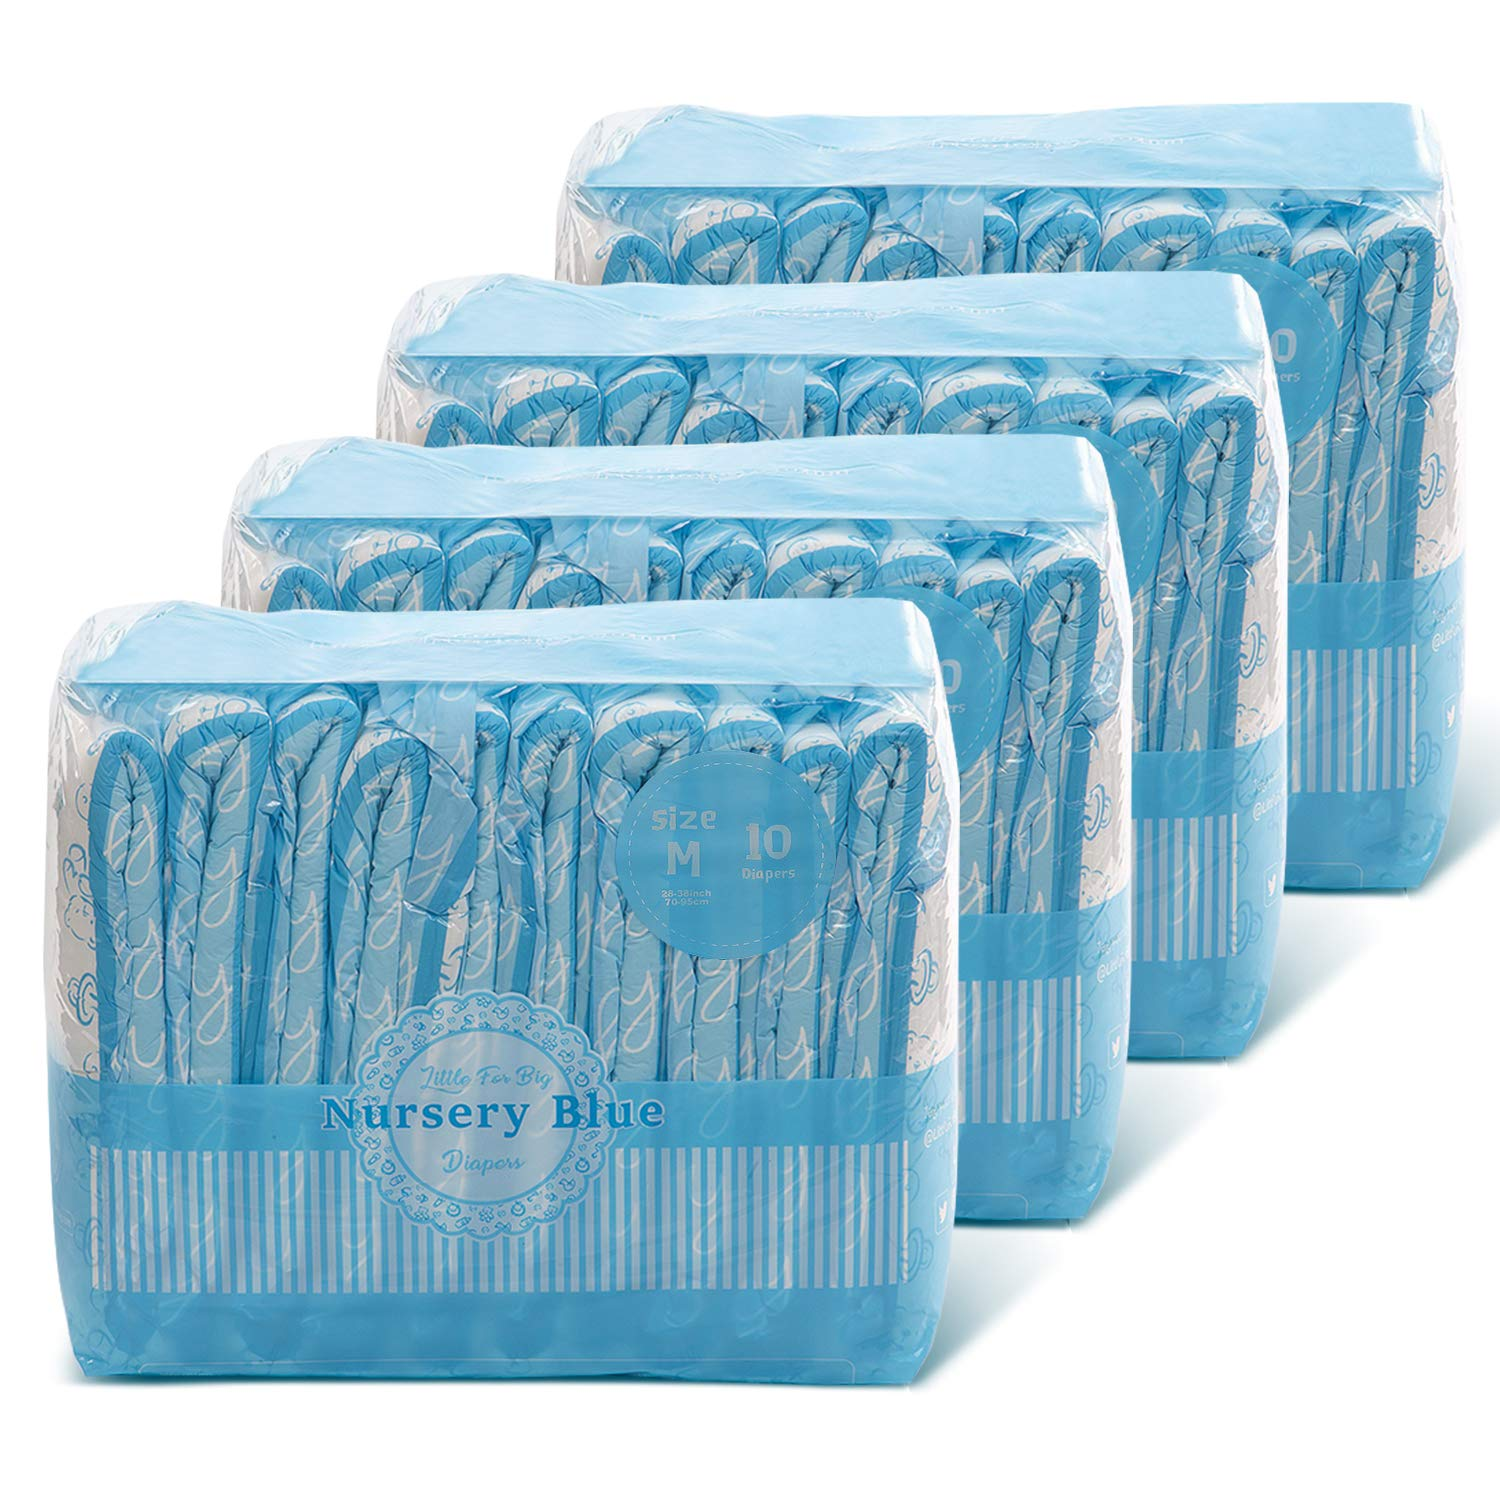 Littleforbig Printed Adult Brief Diapers Adult Baby Diaper Lover ABDL 40 Pieces (4 Packs) - Nursery Blue(M)